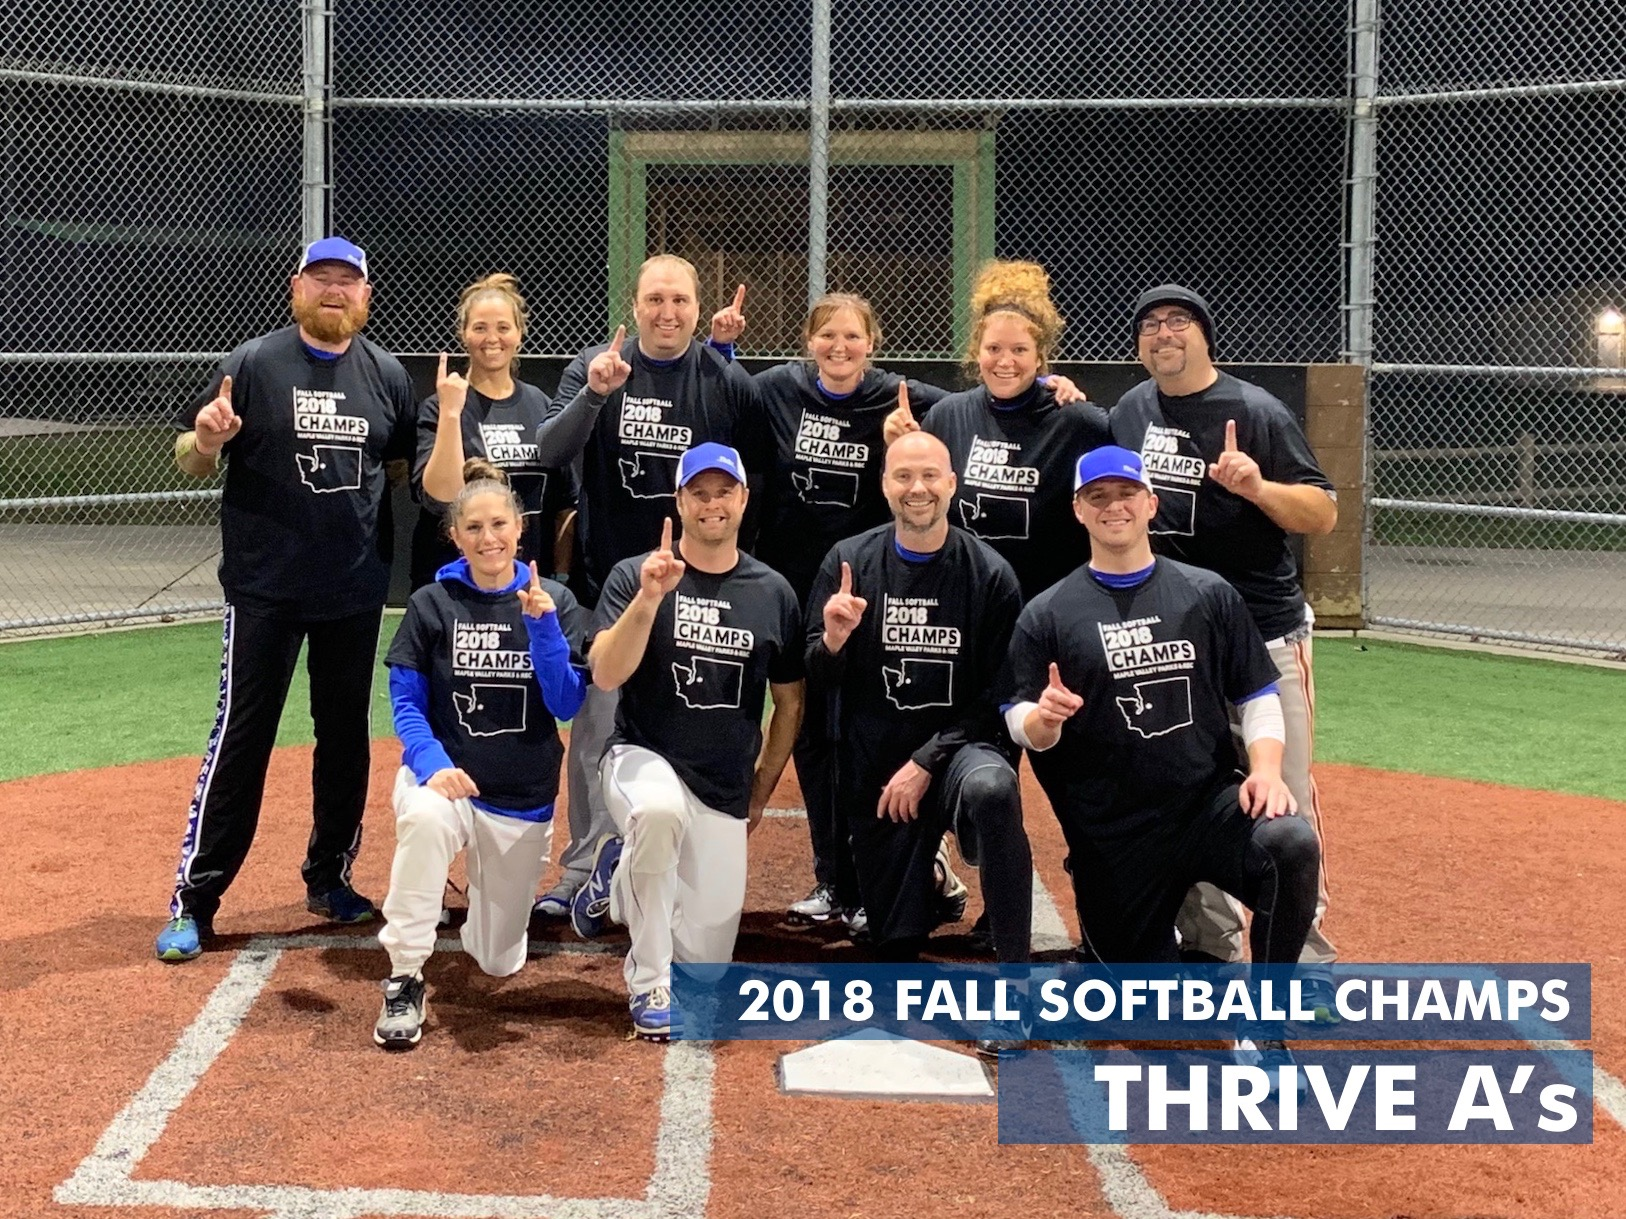 2018 Fall COED Softball Champs 11-2-18